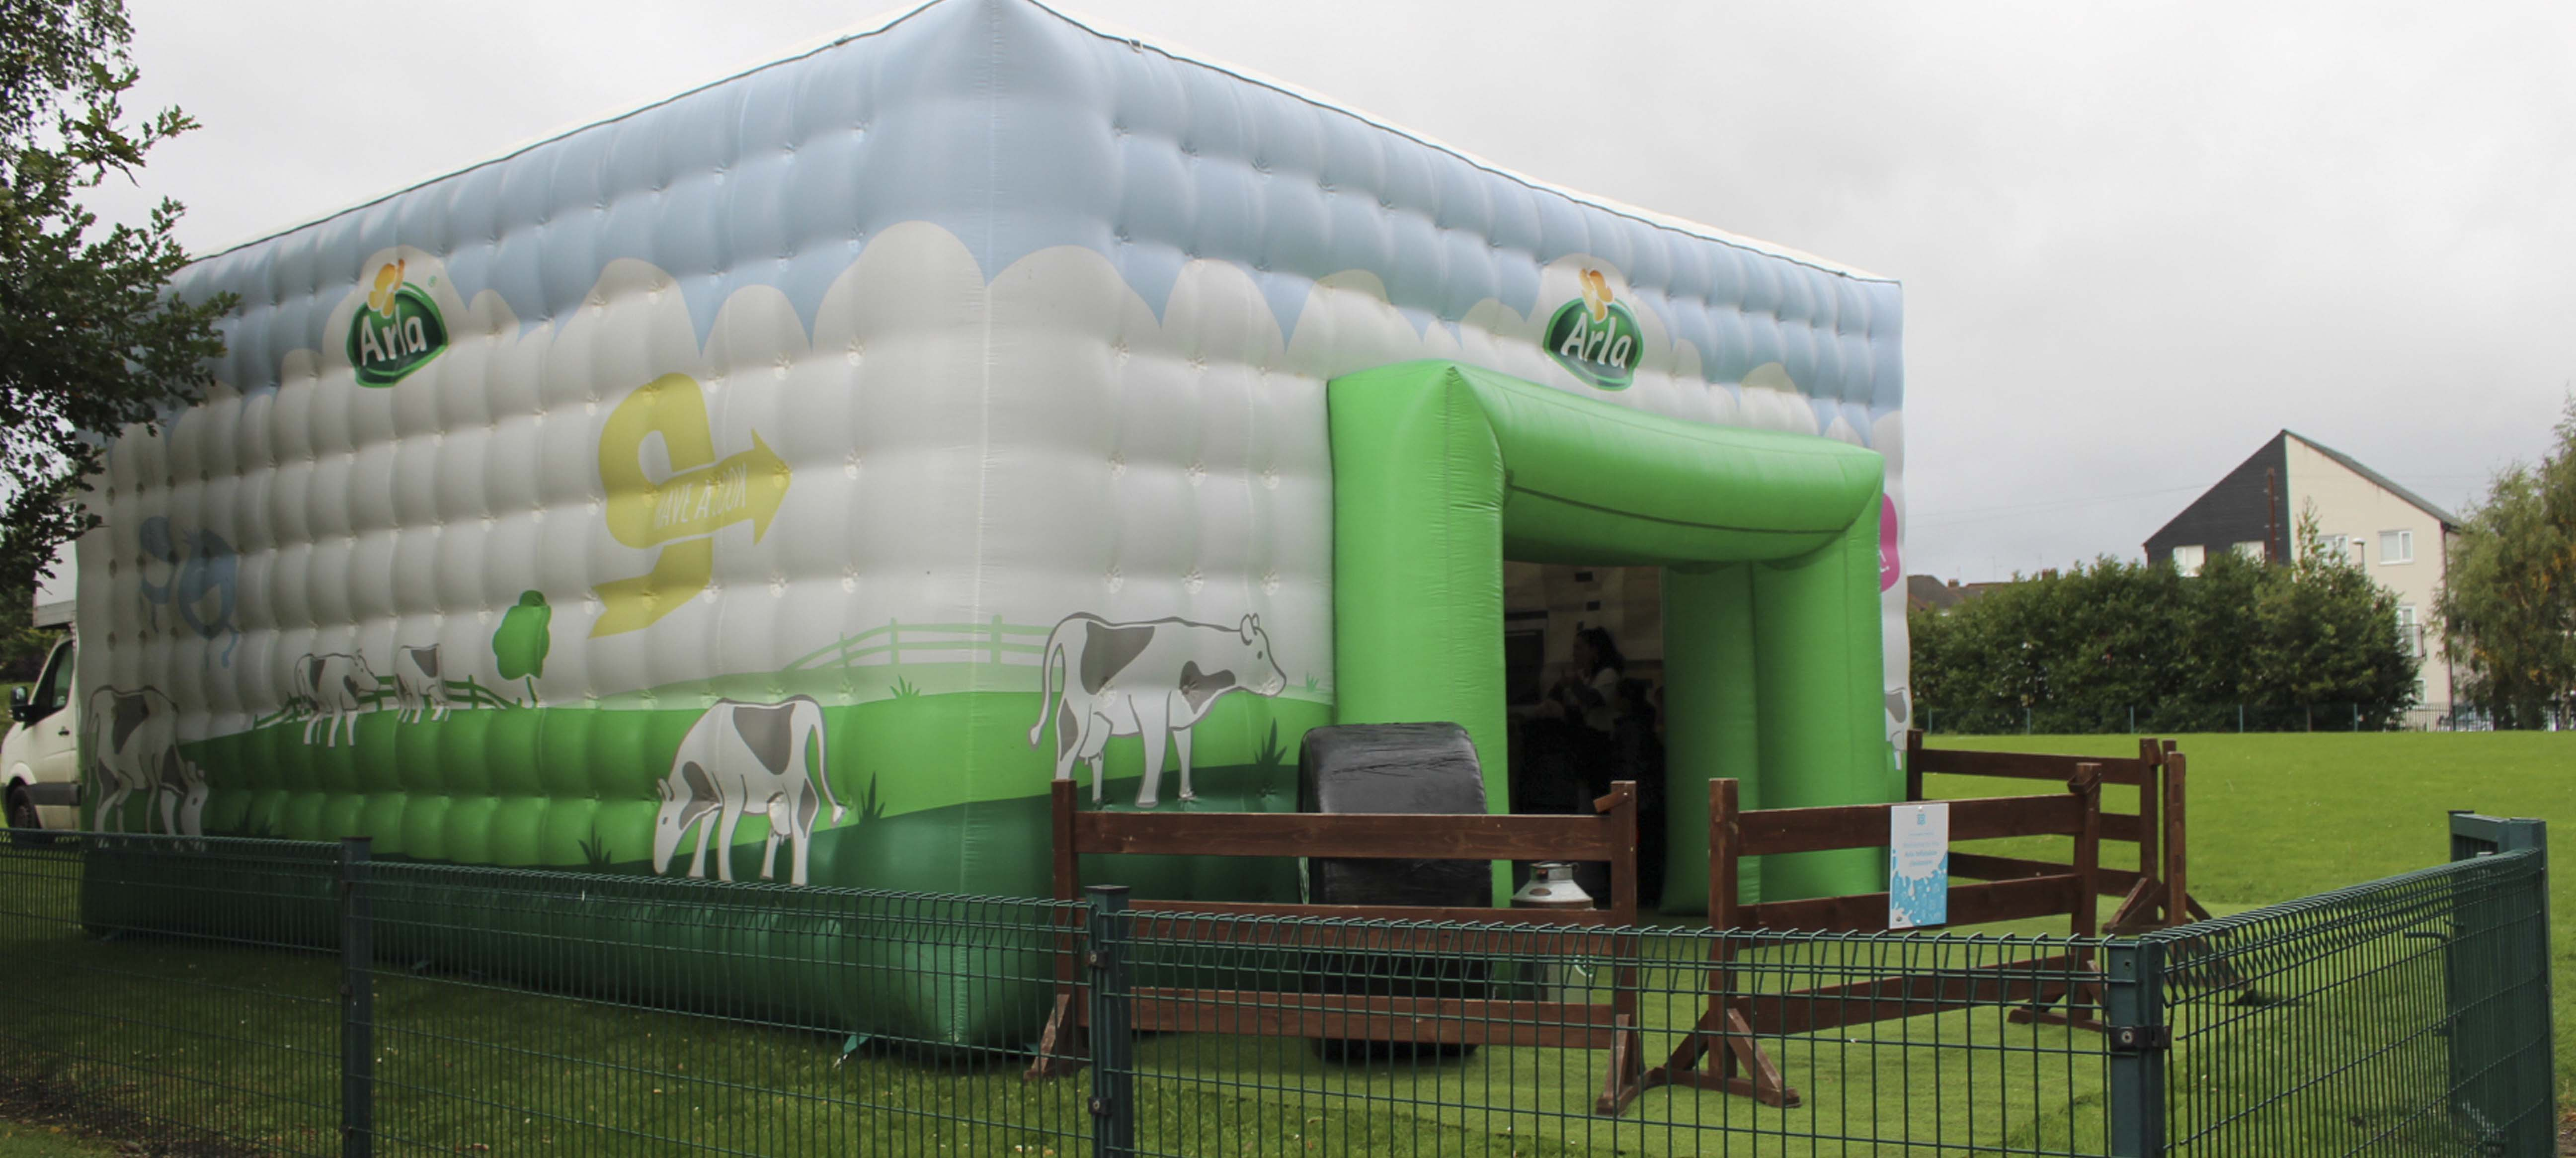 The Arla inflatable classroom comes to Oakwood